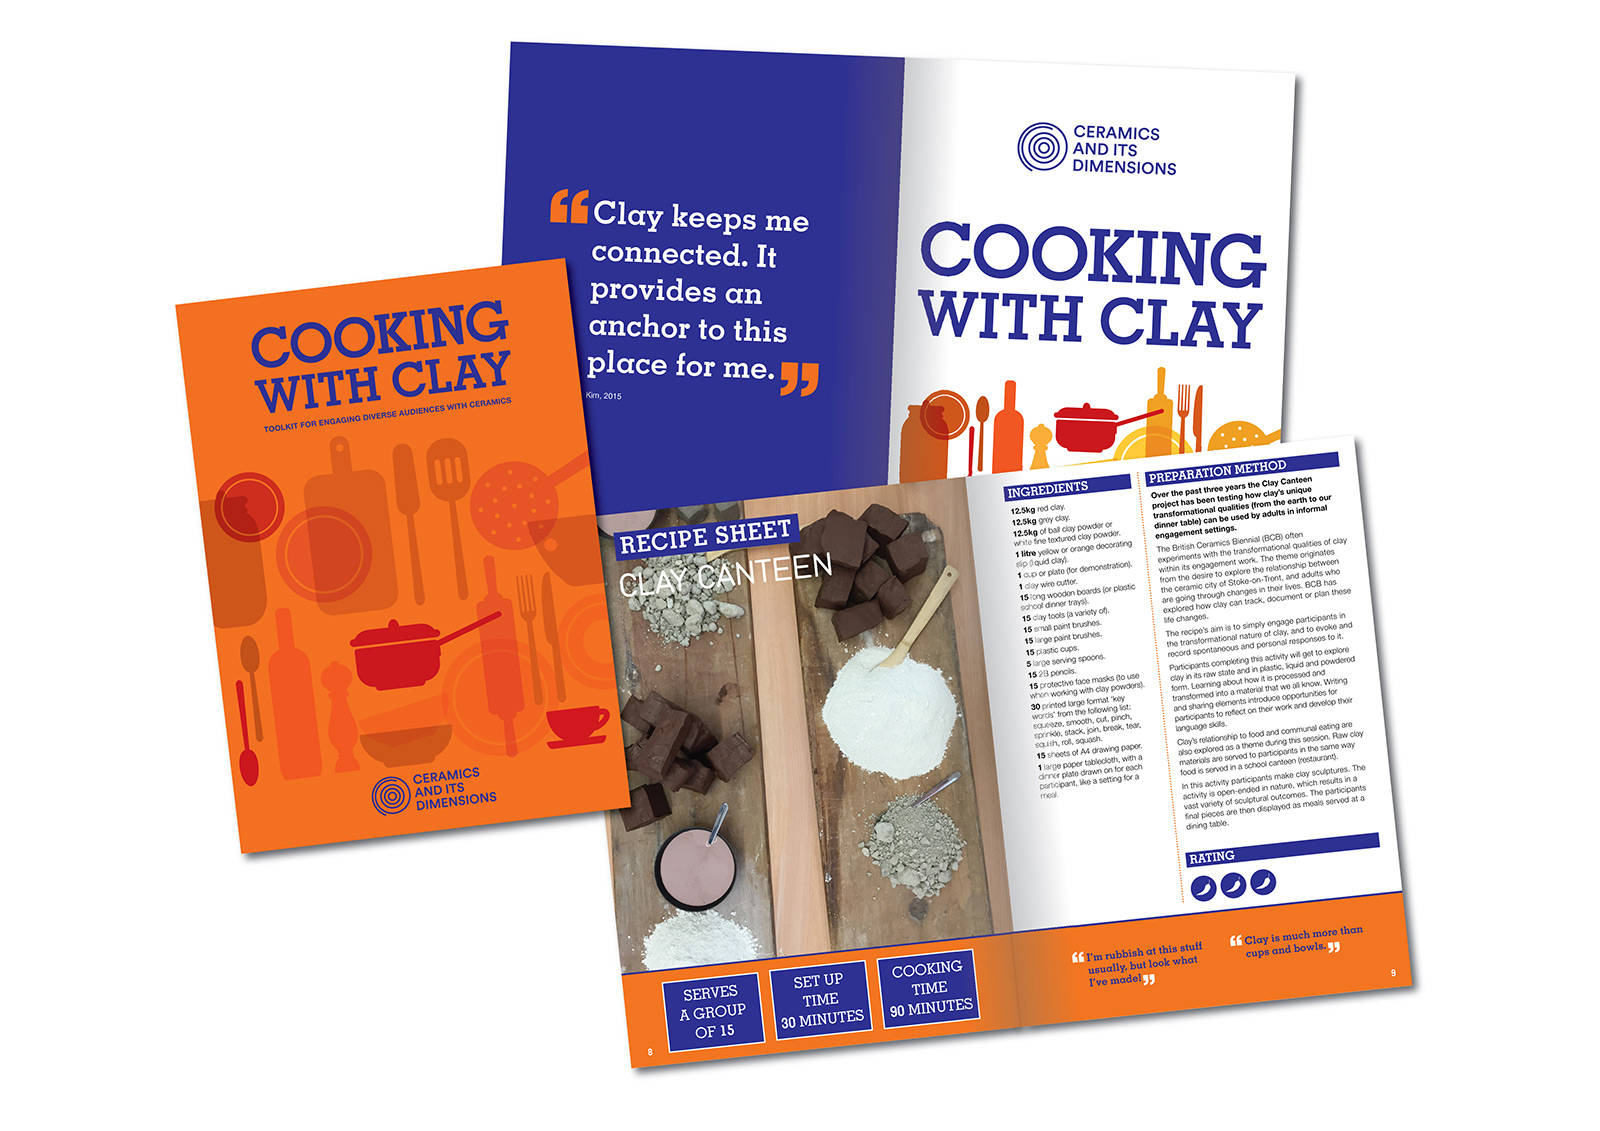 Cooking with Clay